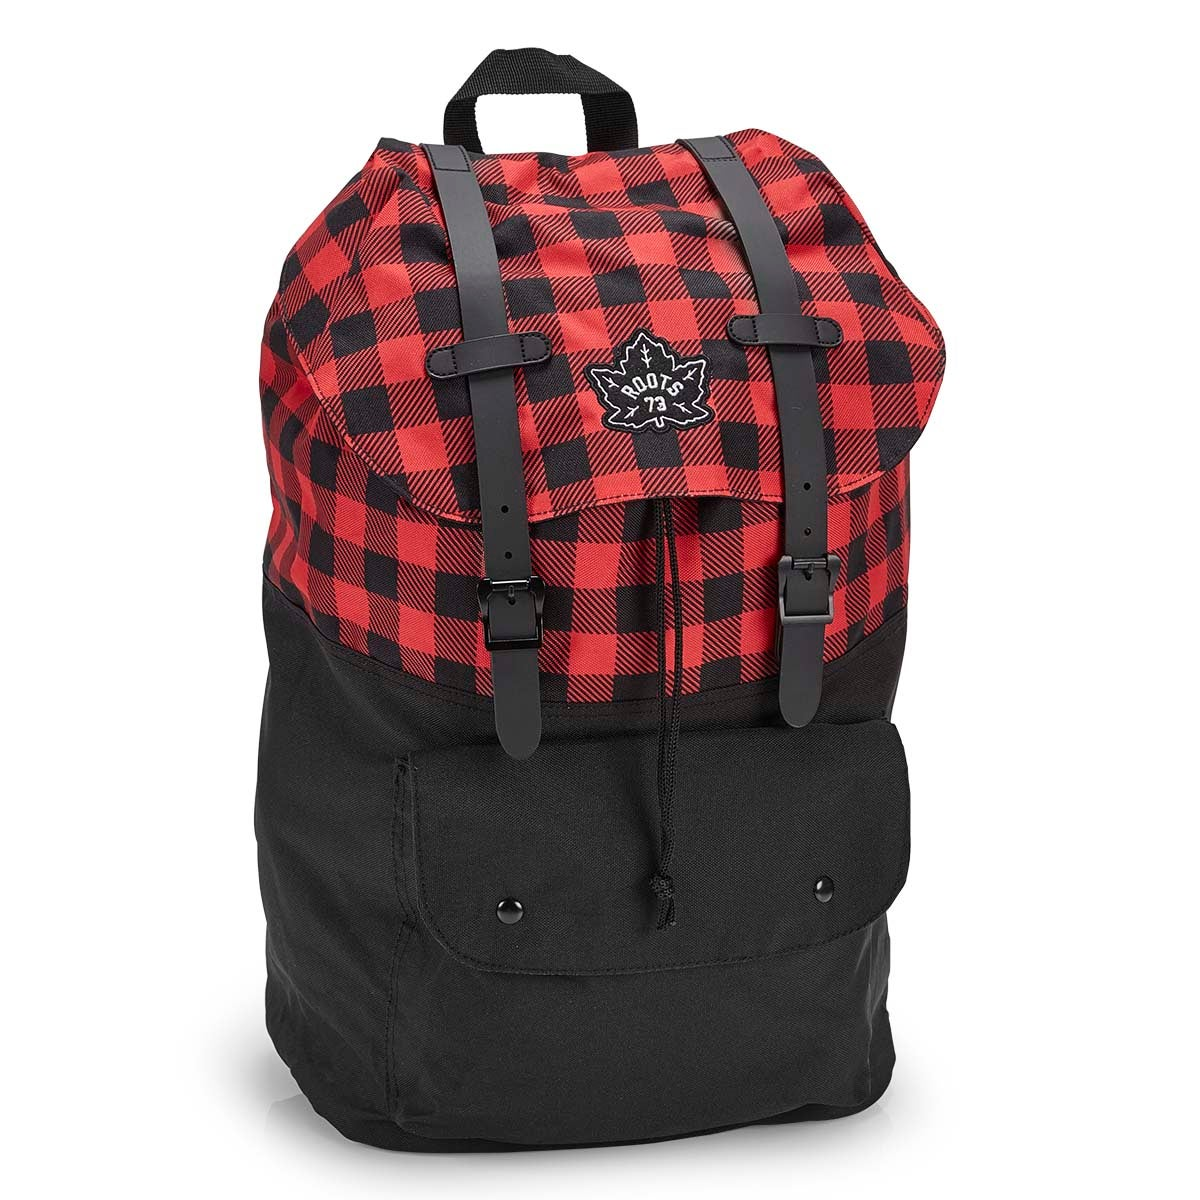 Unisex ROOTS73 black/red paid backpack